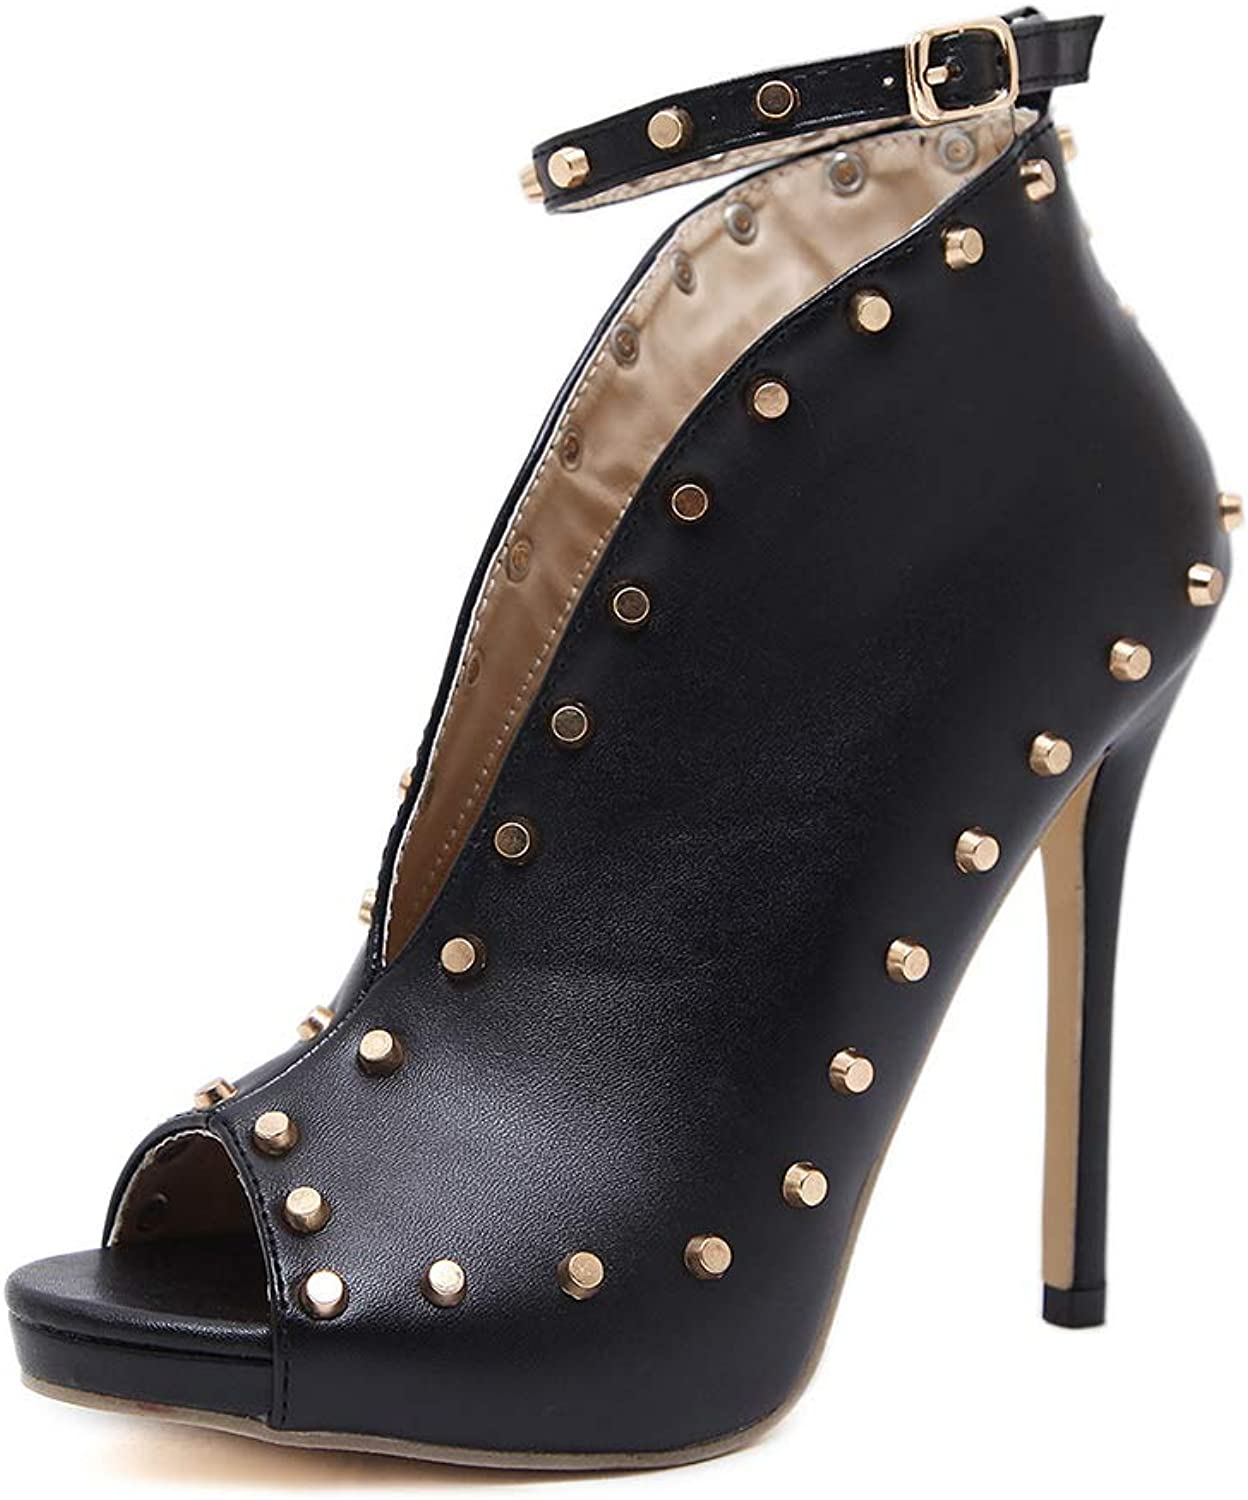 Women Sexy Studded Ankle Straps Stiletto High Heel Pumps Ankle Booties Fisherman Sandals,Black,6.5MUS